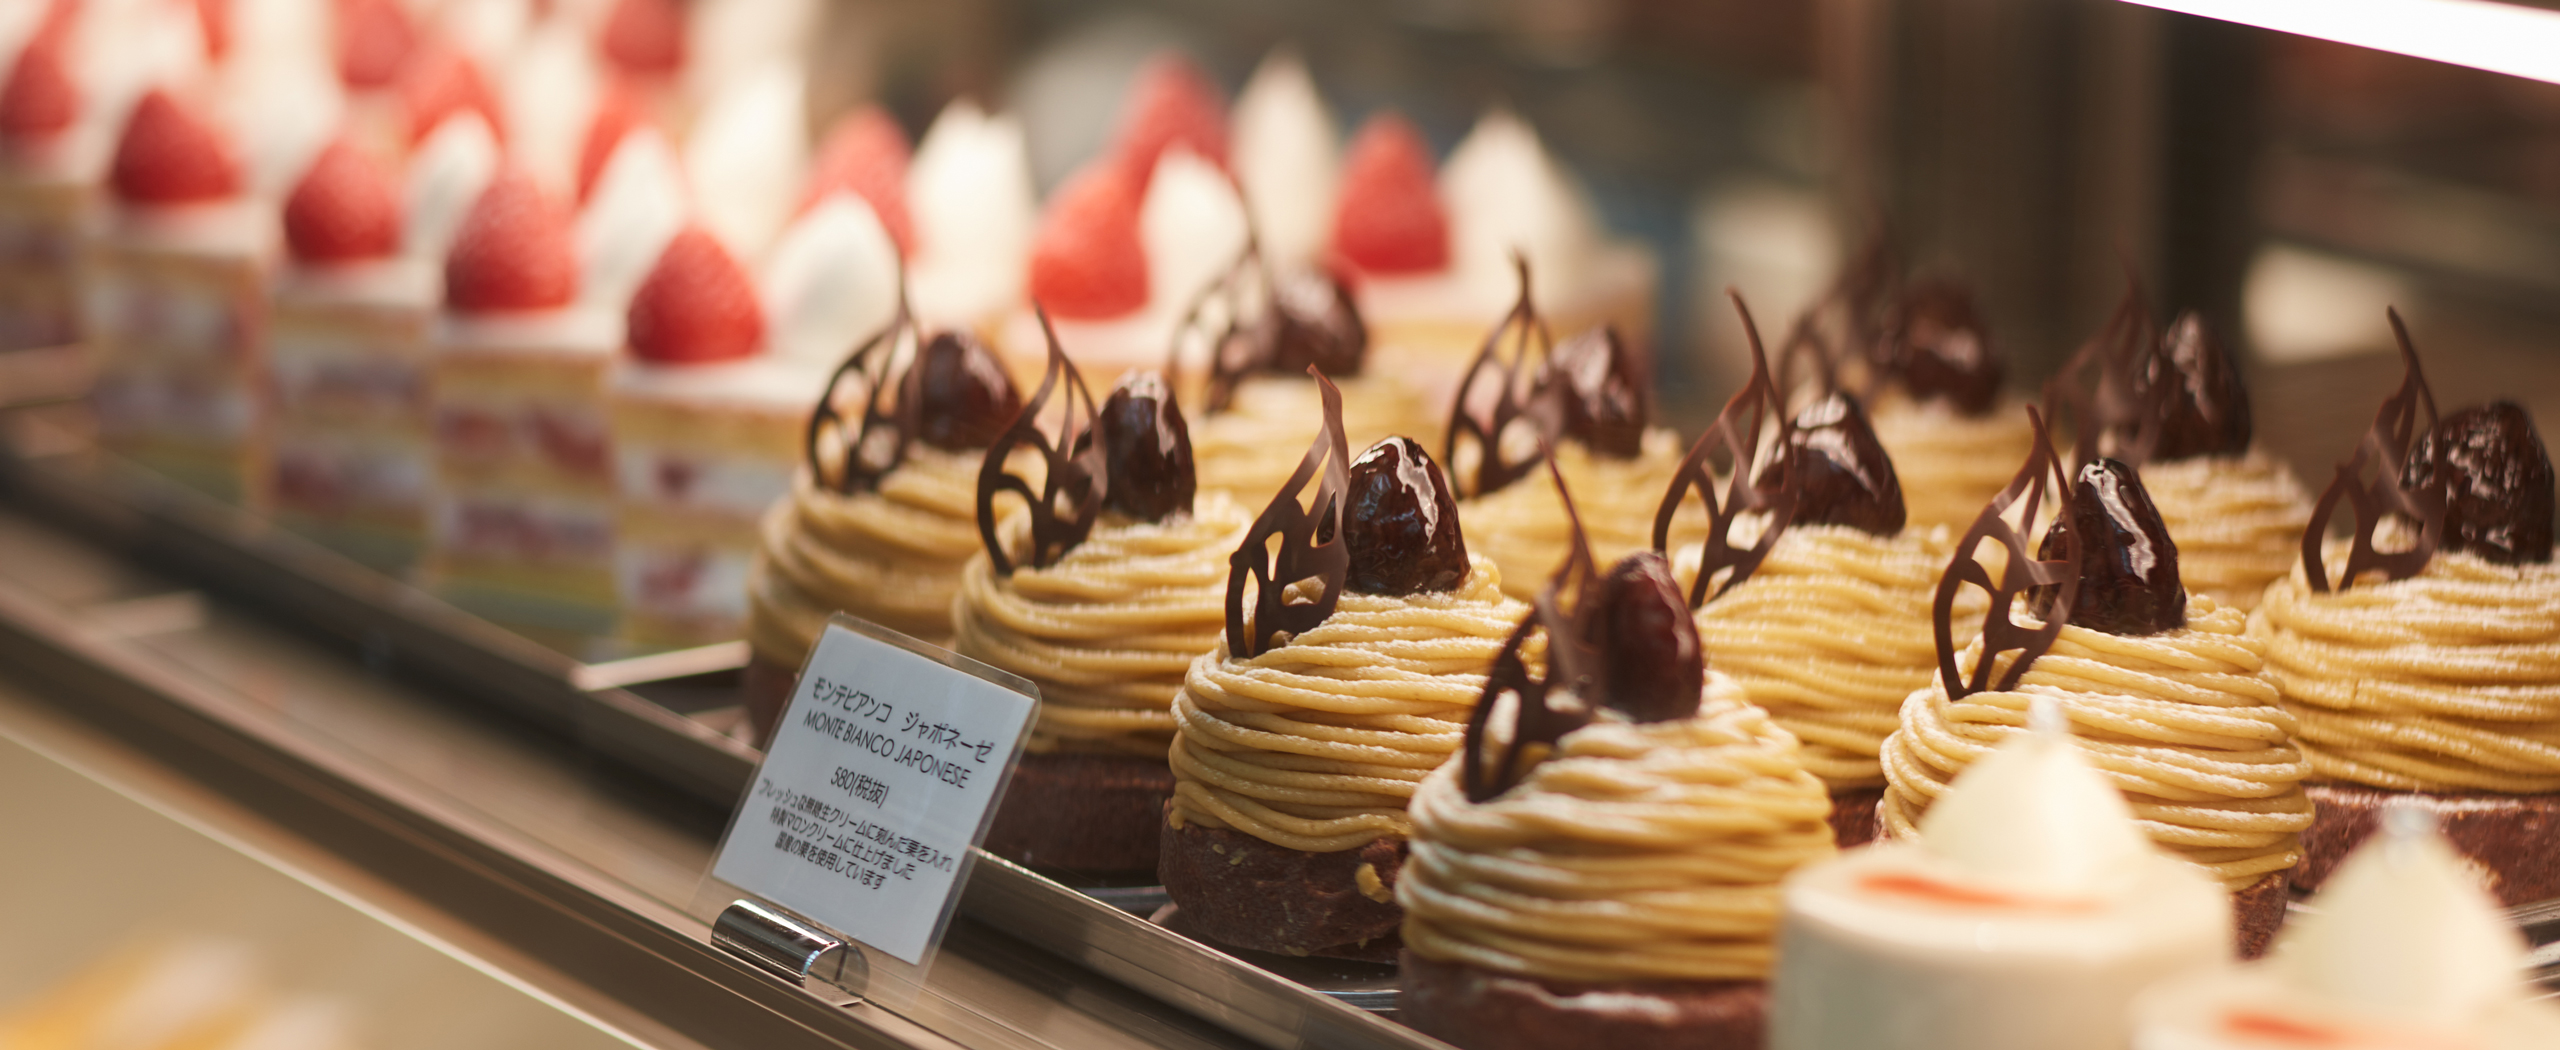 Fiorentina Pastry Boutique|Restaurants at a Luxurious Roppongi hotel, Grand Hyatt Tokyo